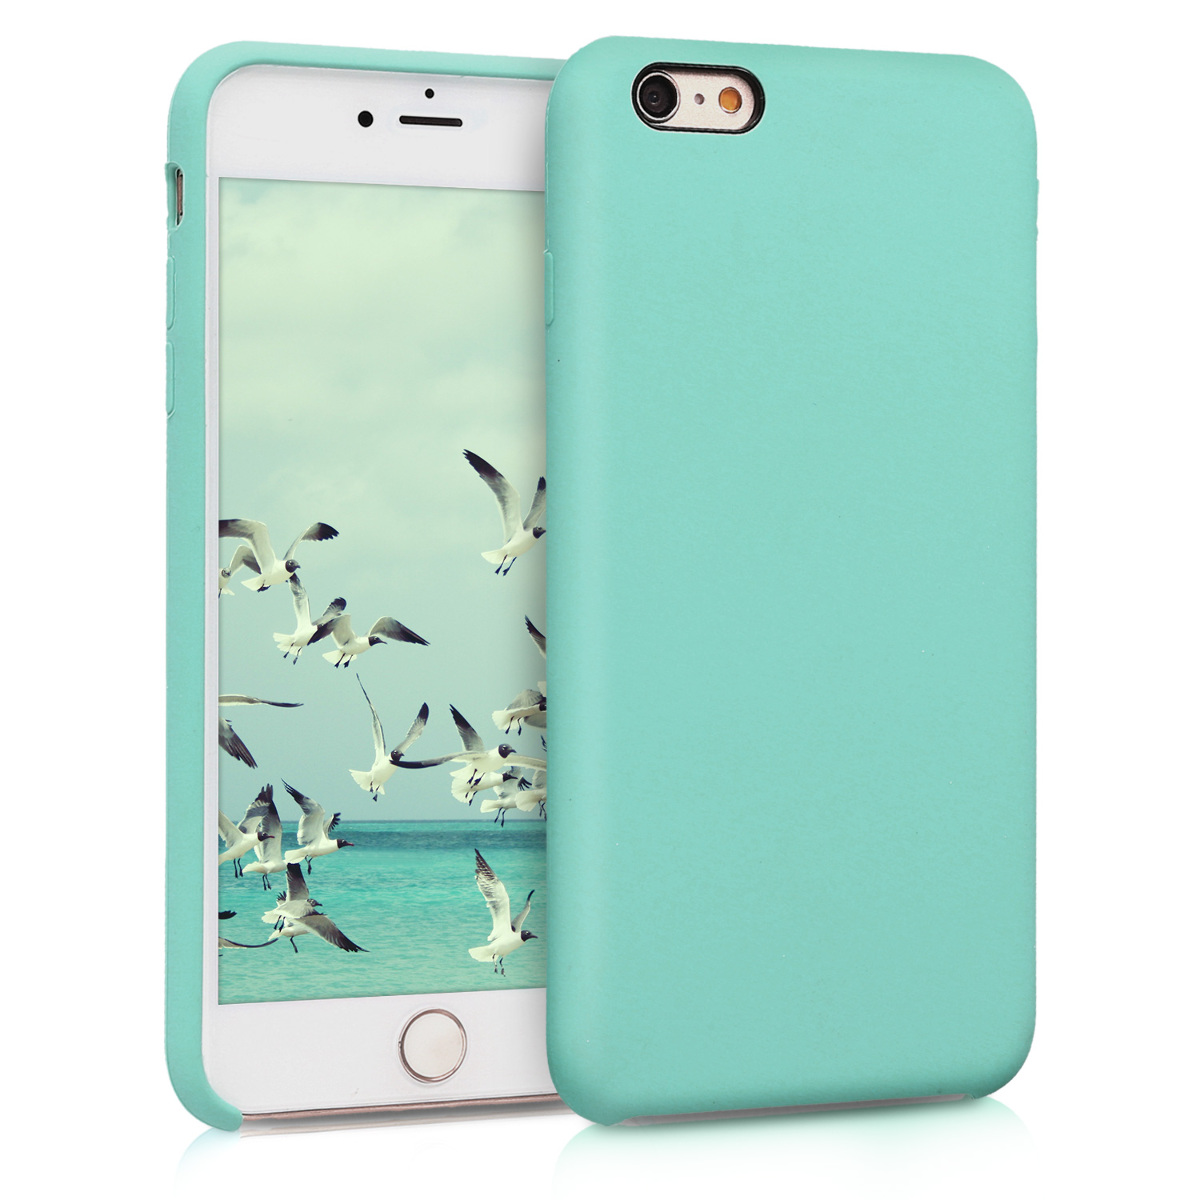 KW Θήκη Σιλικόνης iPhone 6 Plus / 6S Plus - Soft Flexible Rubber Protective Cover - Mint Matte (40841.50)